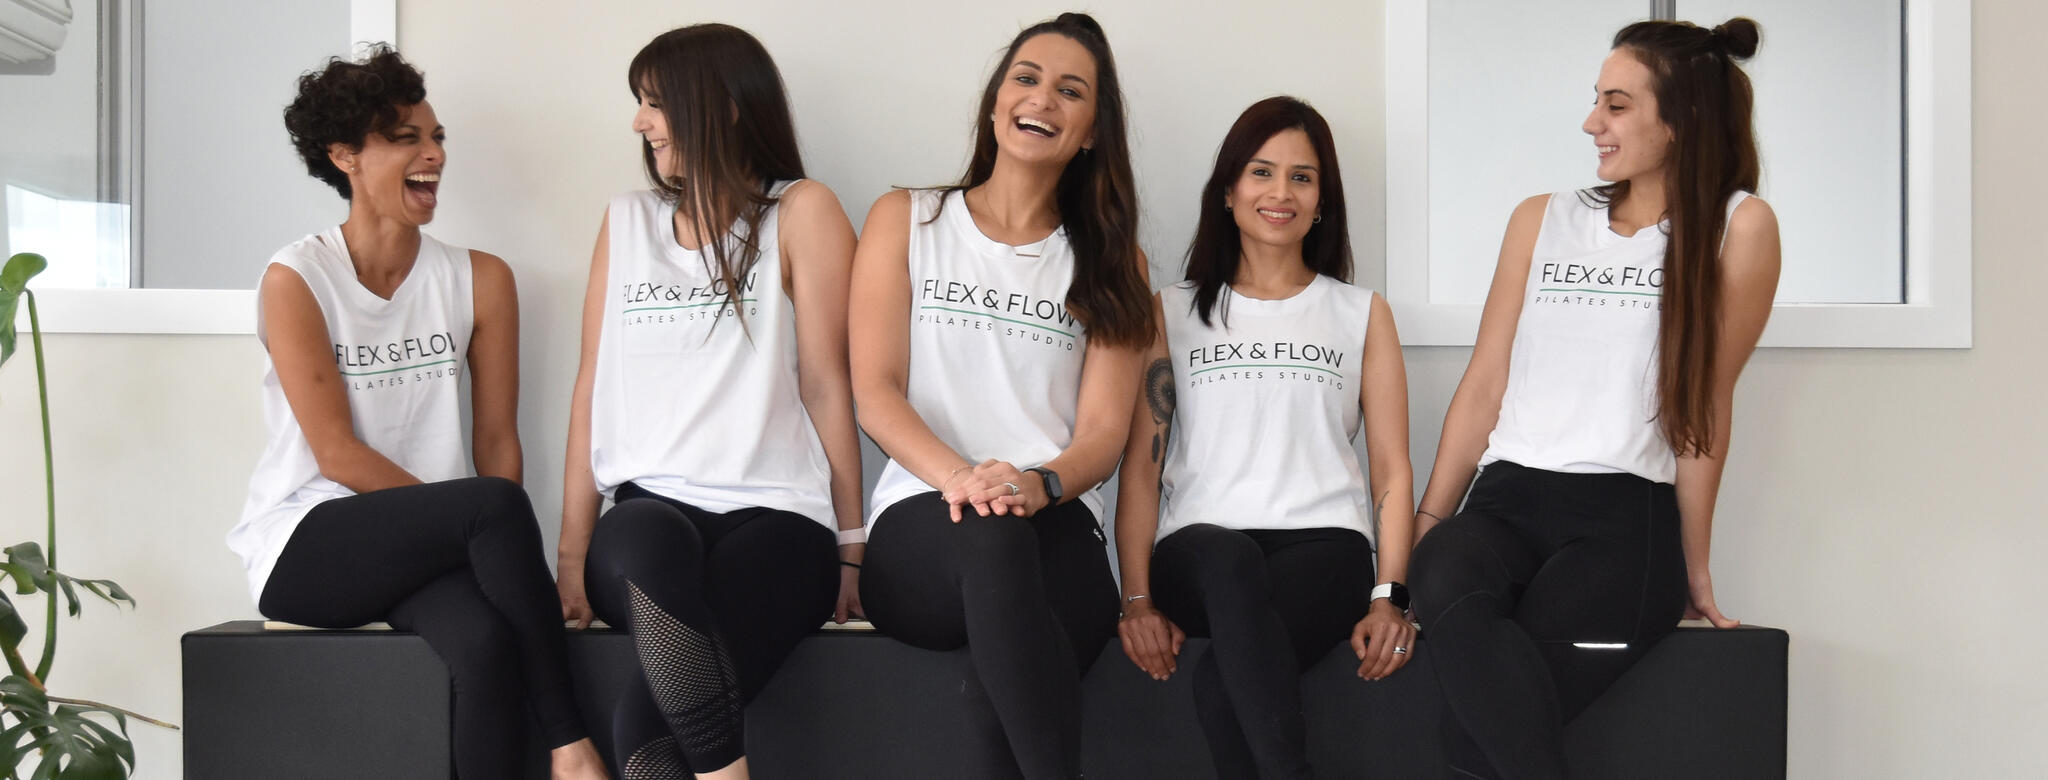 The staff of Flex and Flow Pilates joking together in the exercise room